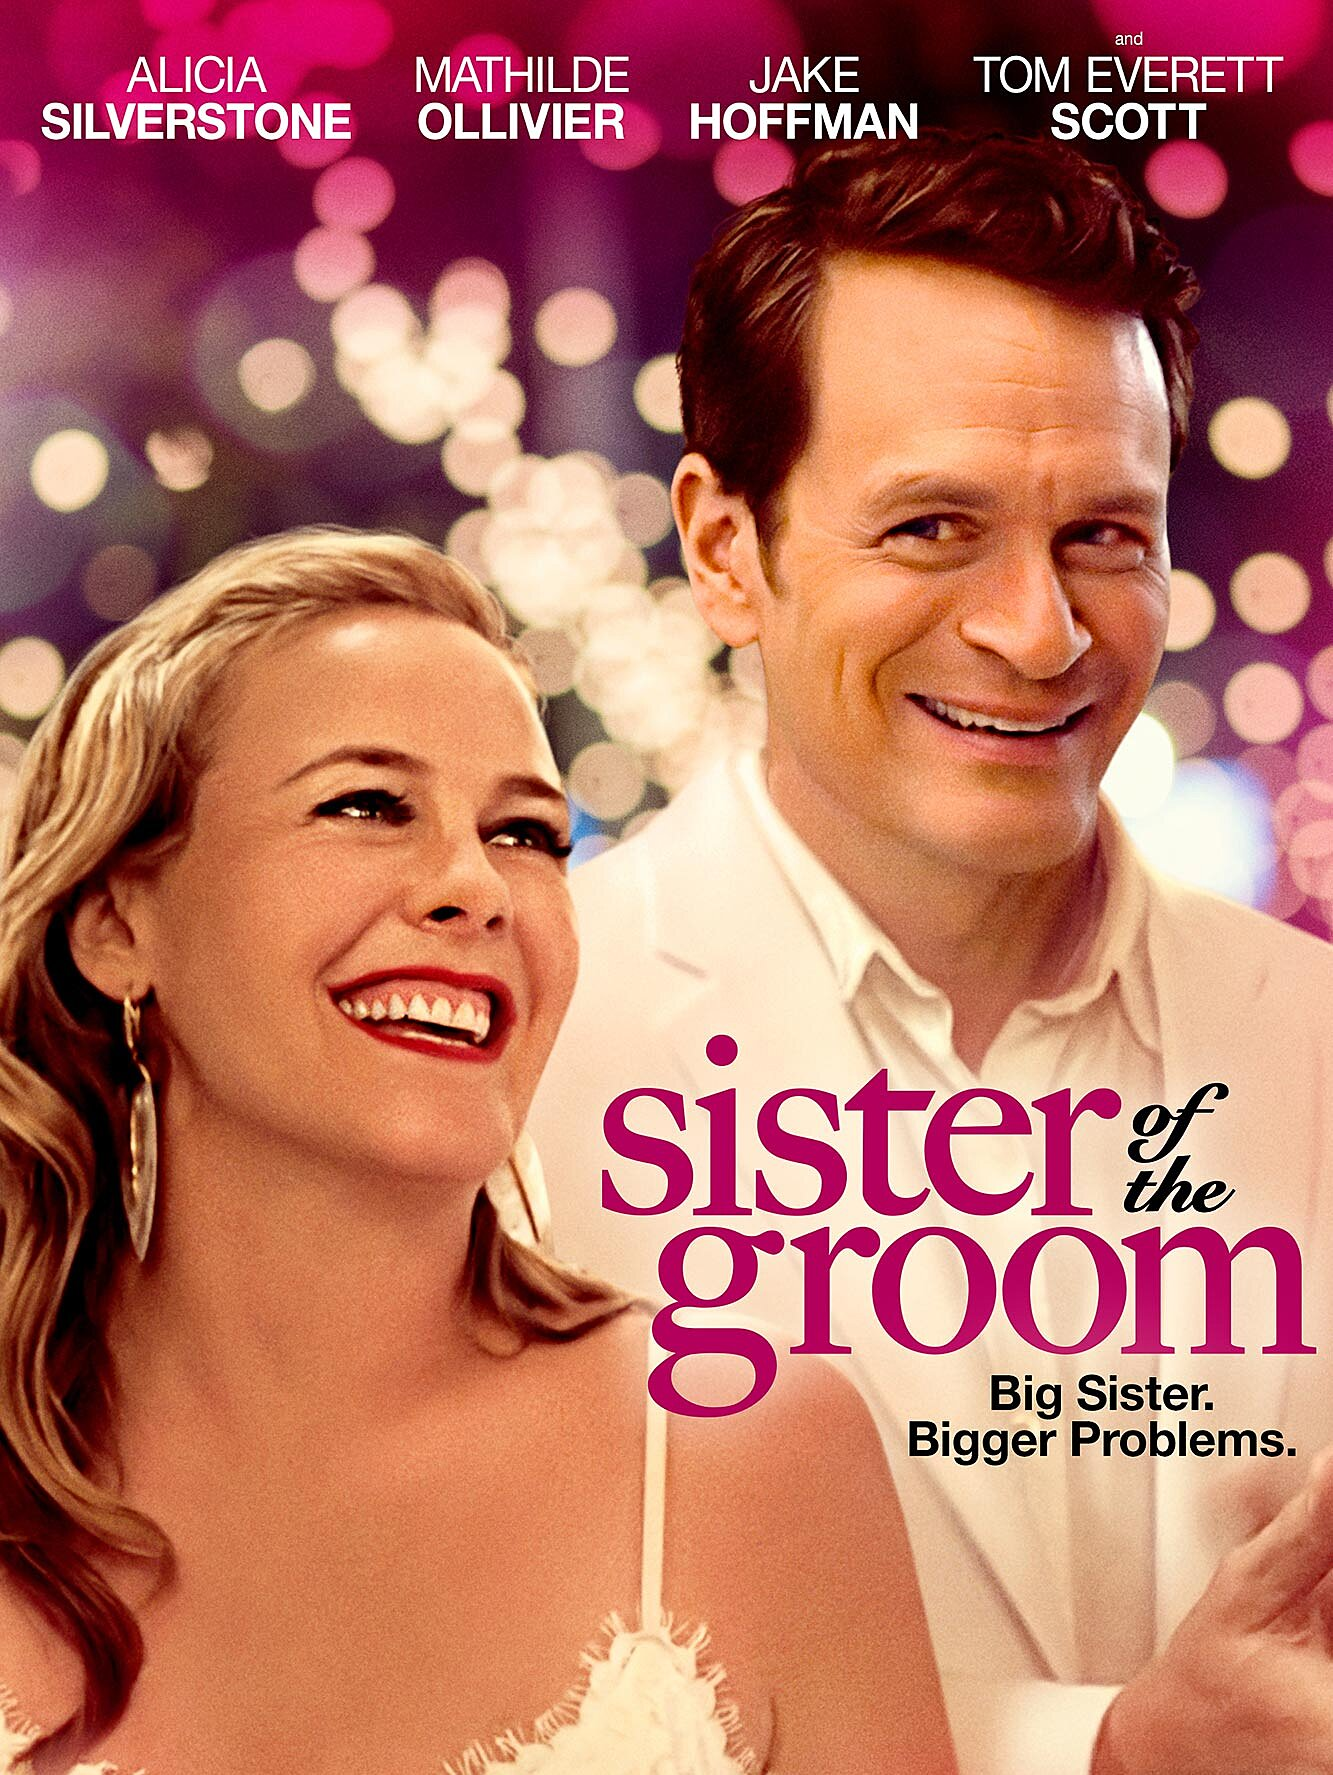 Alicia Silverstone and Tom Everett Scott attend the most cringe wedding in  Sister of the Groom trailer | EW.com